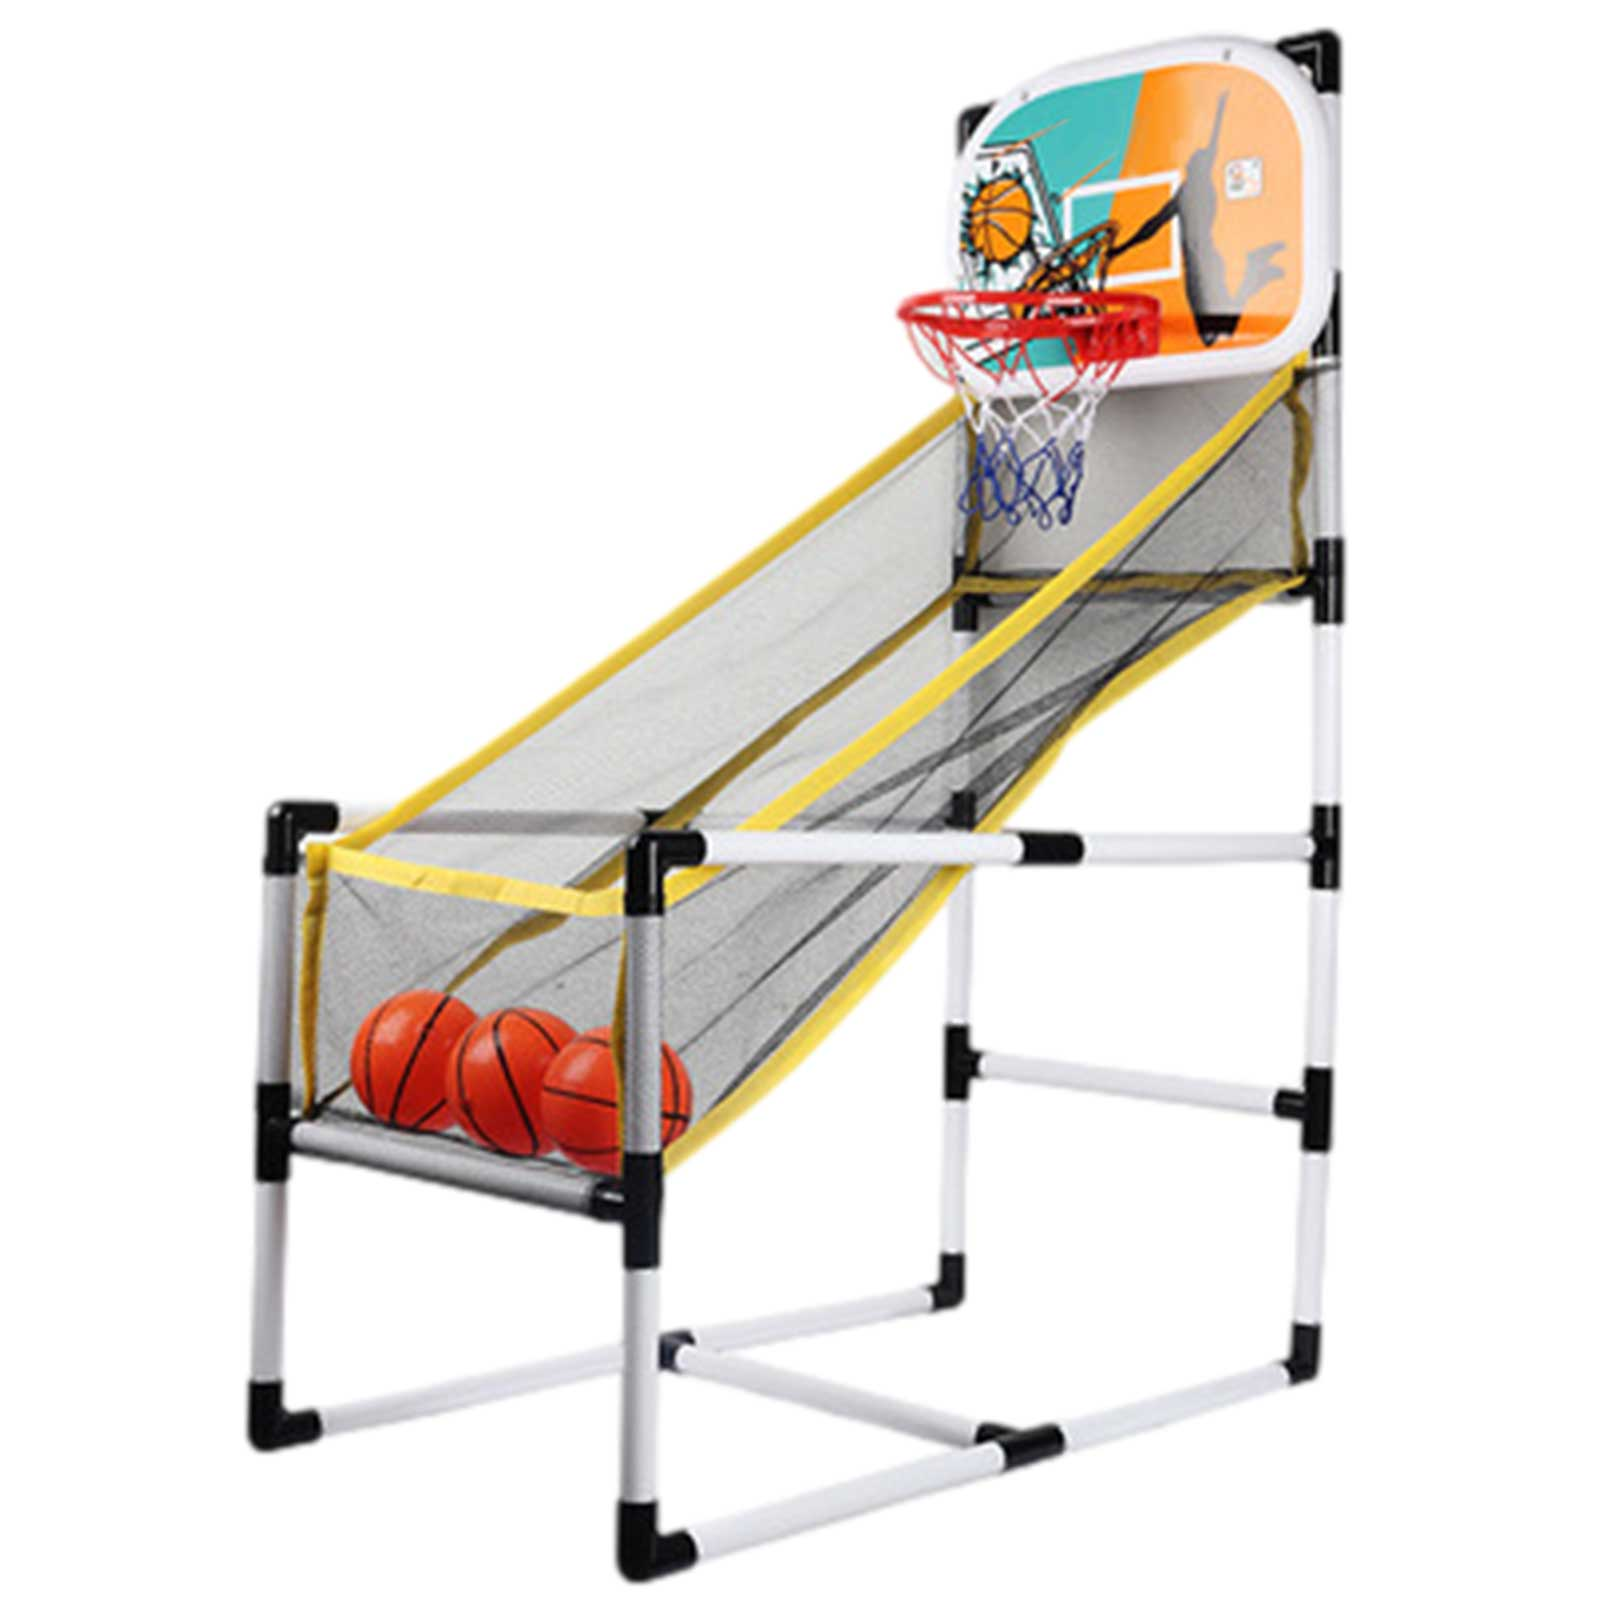 Basketball Shooting Machine Portable Basketball Hoop Arcade Game Brain-Training Toy For Children Kids Educational Toy Gift